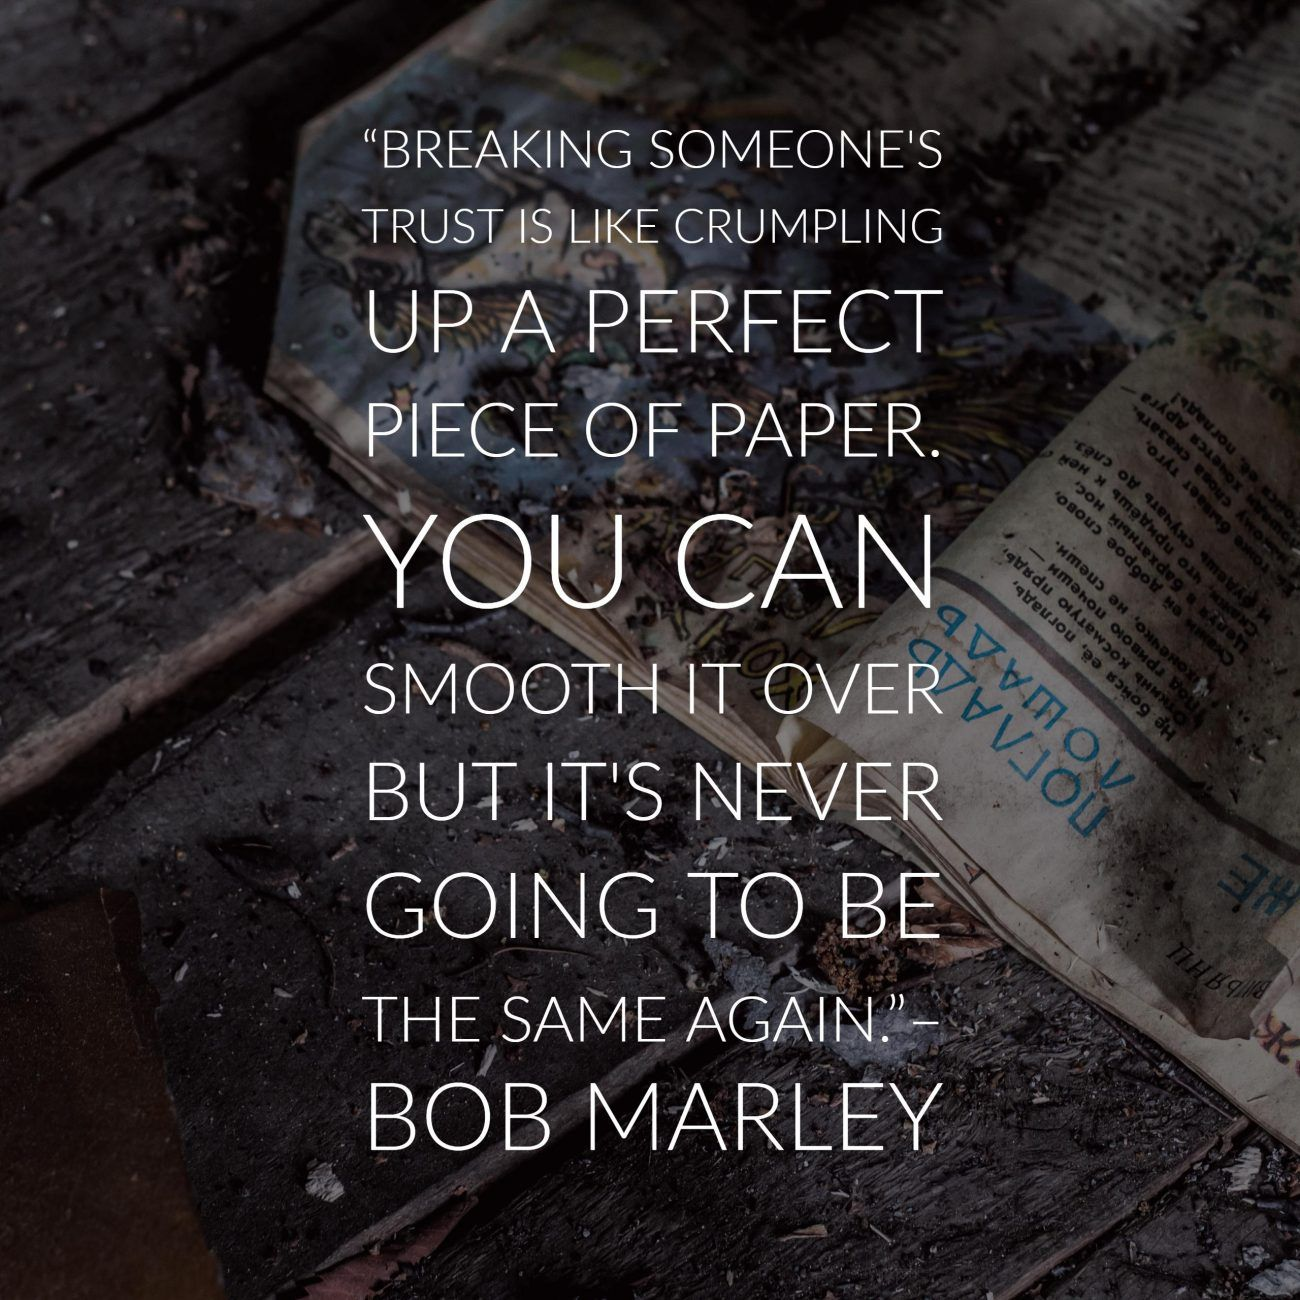 Love Quotes About Life: 30 Motivational Bob Marley Quotes